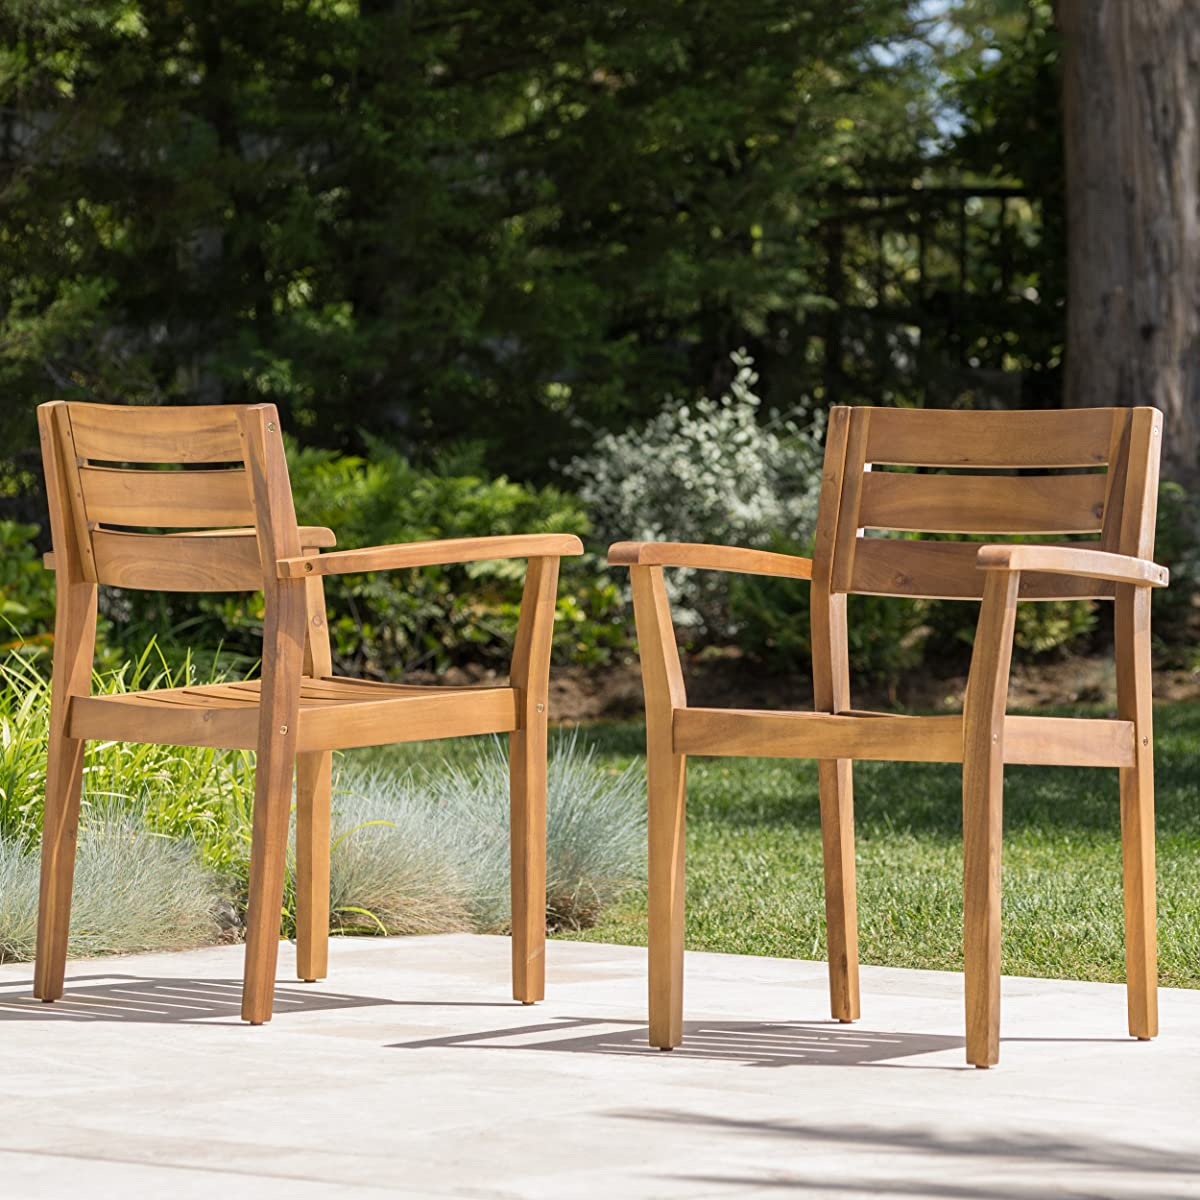 Stanyan Outdoor Teak Finish Acacia Wood 5 Piece Dining Set